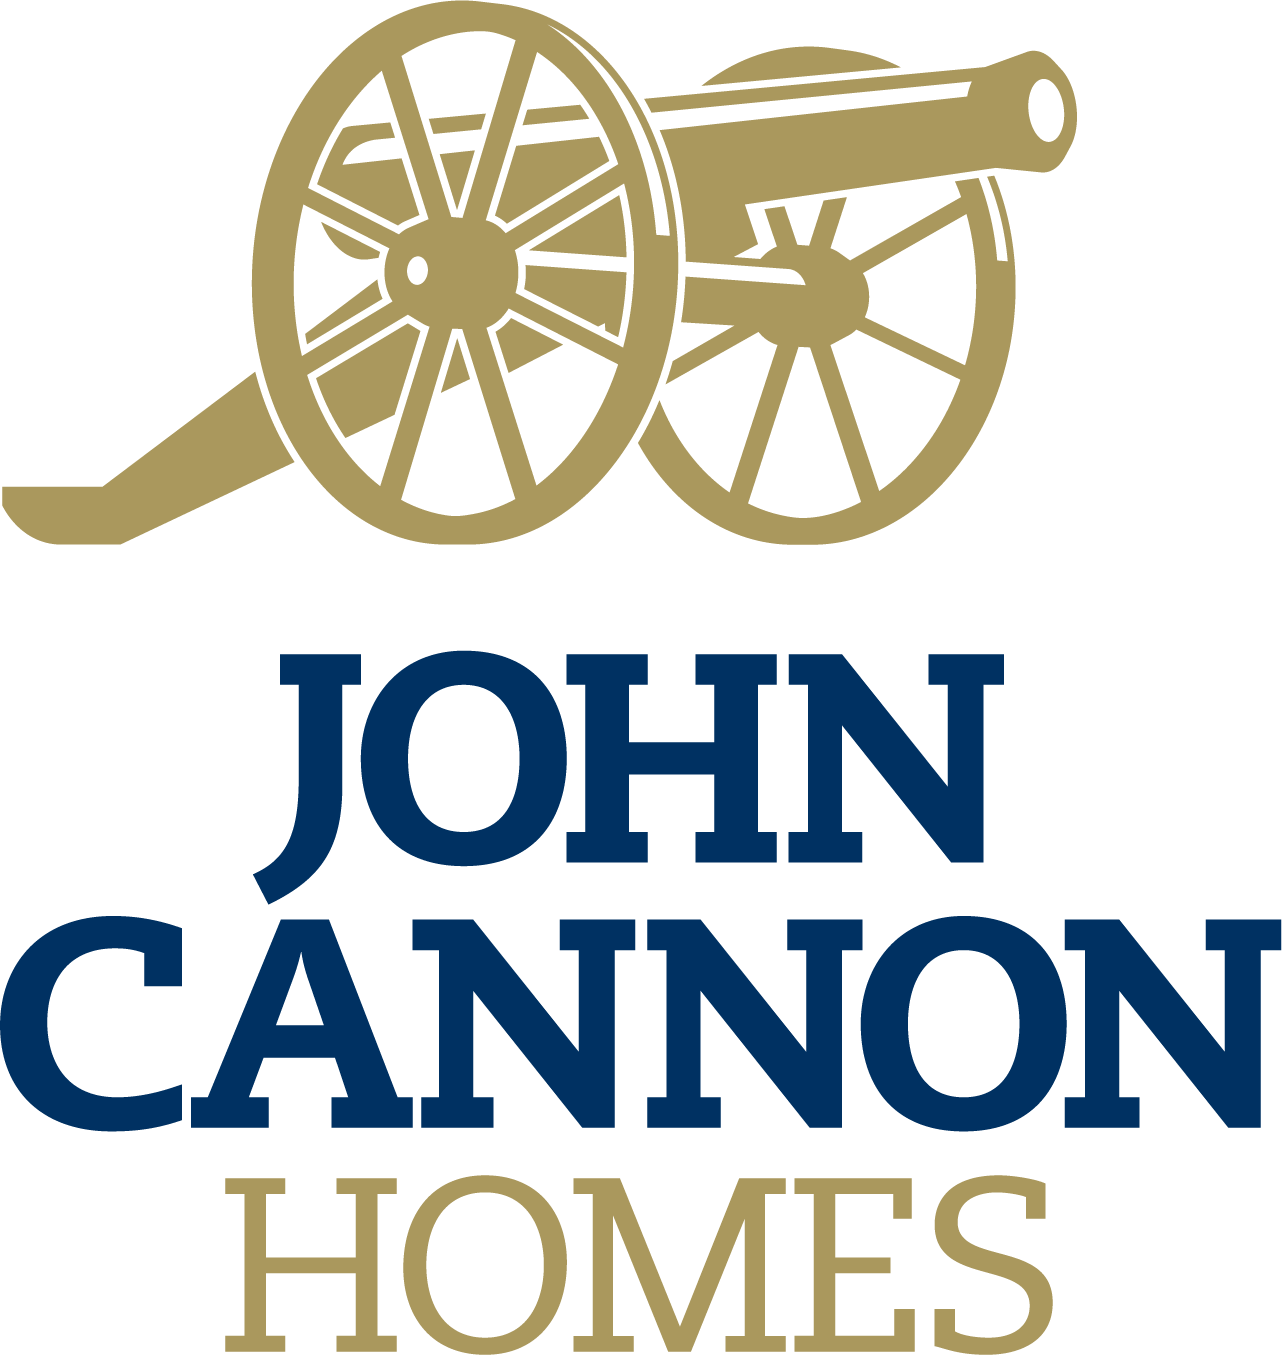 John-Cannon-Homes-Logo.png